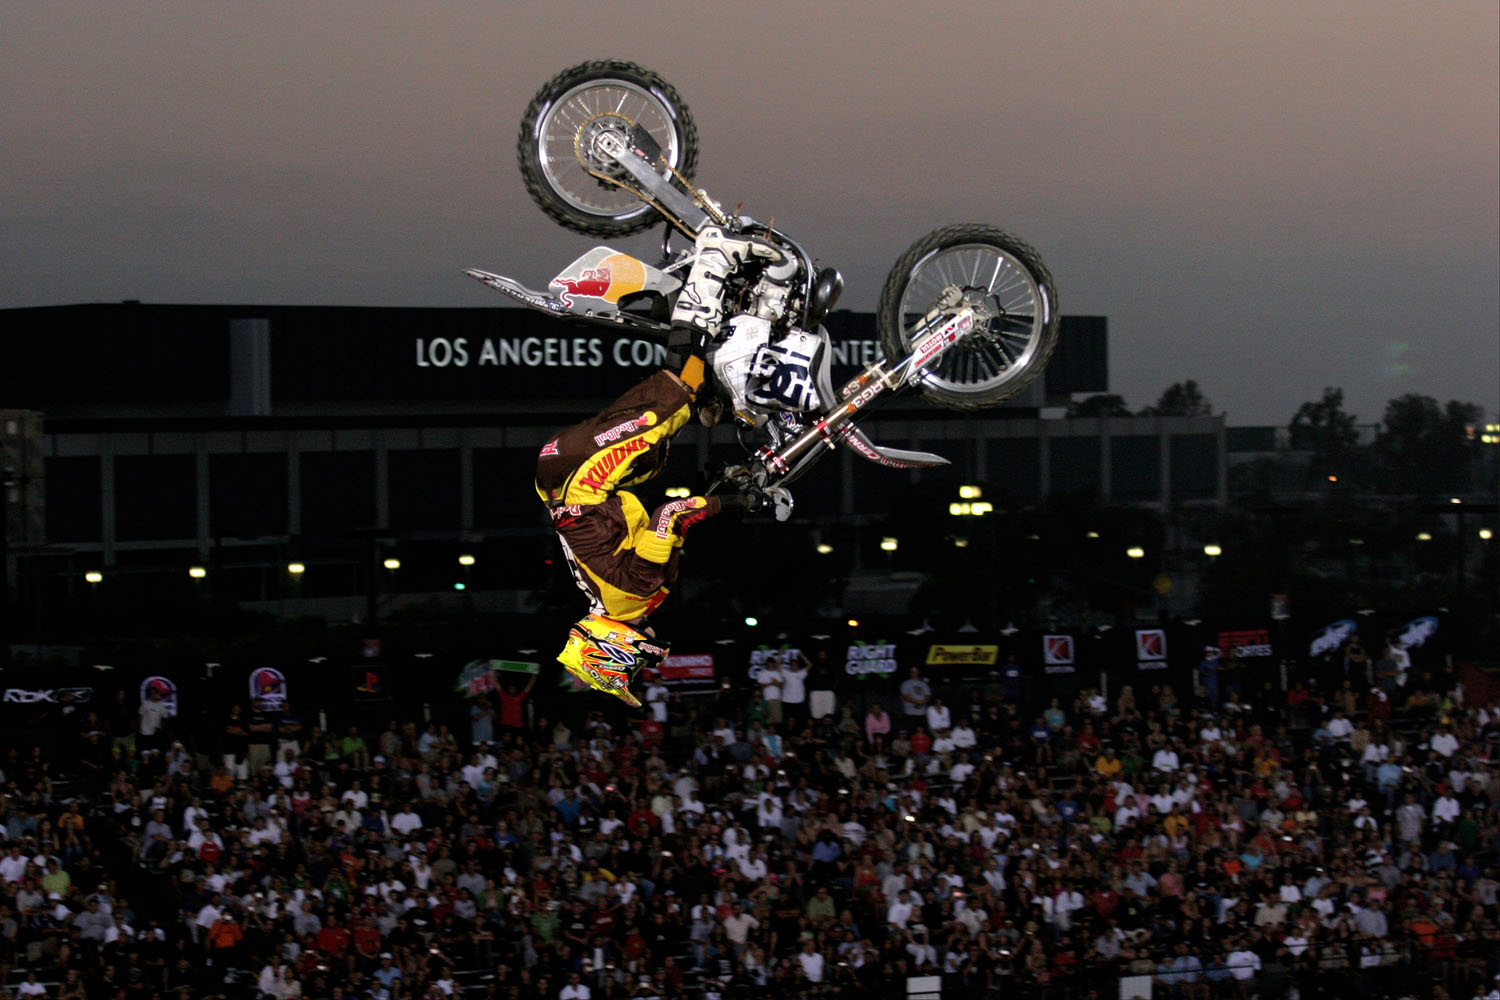 Moto Best Trick participant Travis Pastrana at X Games 11 at the Staples Center in Los Angeles, California on August 4, 2005.